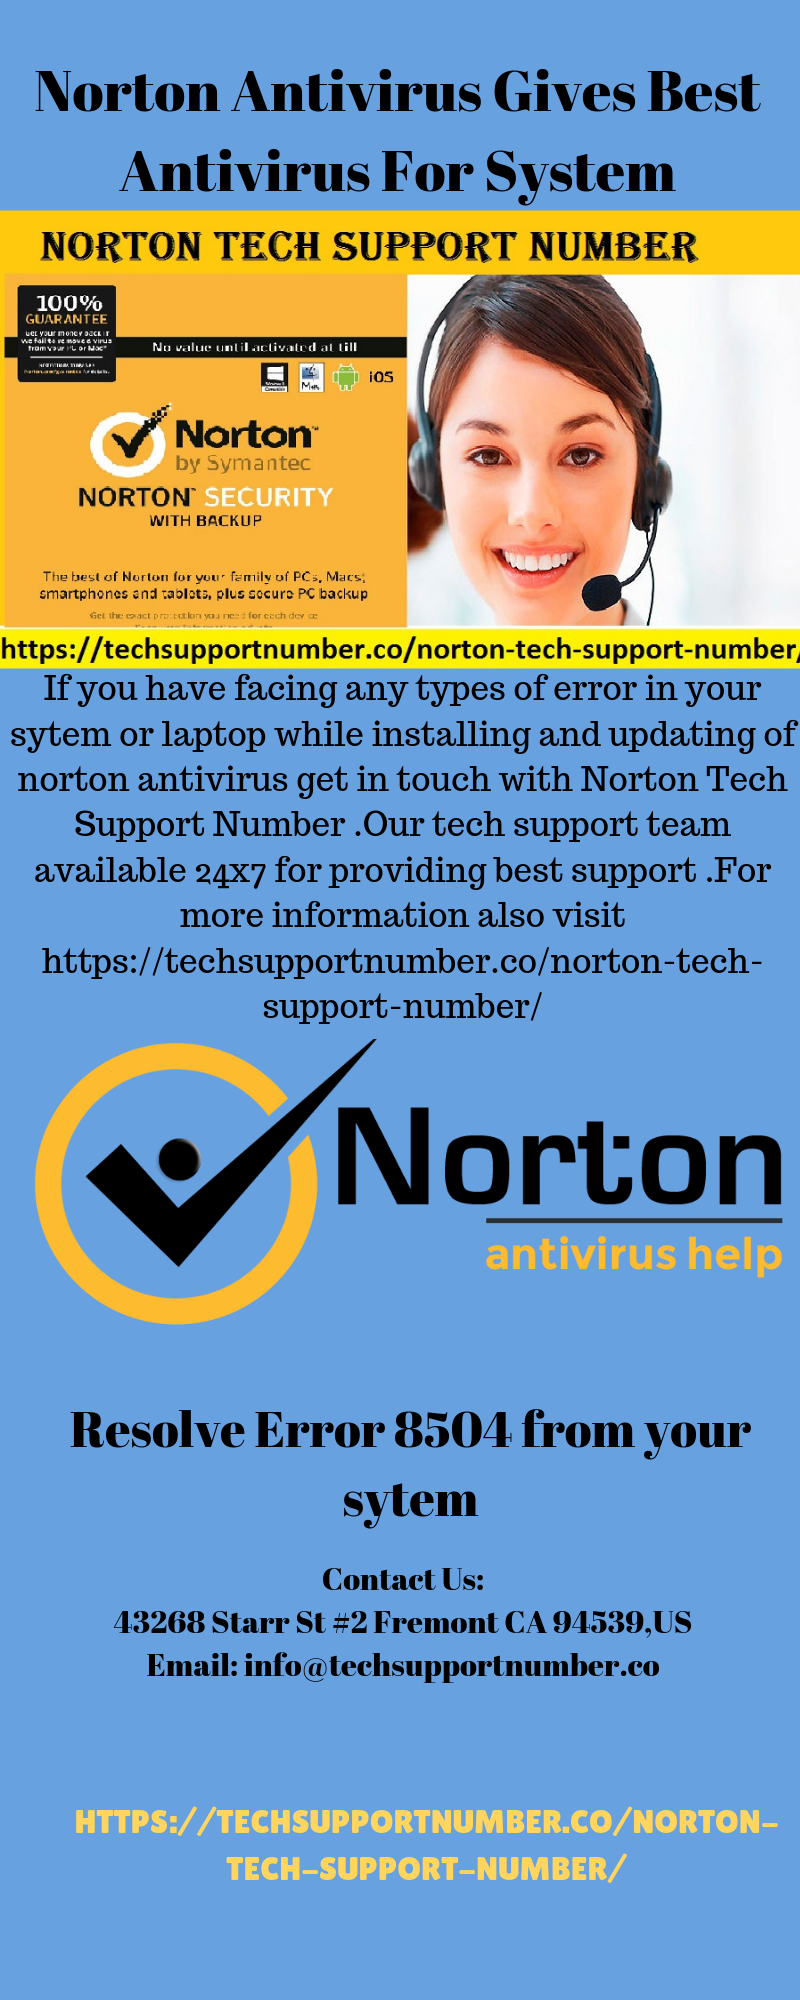 To fix the issue brought about by another security program, uninstall any non-Norton/Symantec an ...